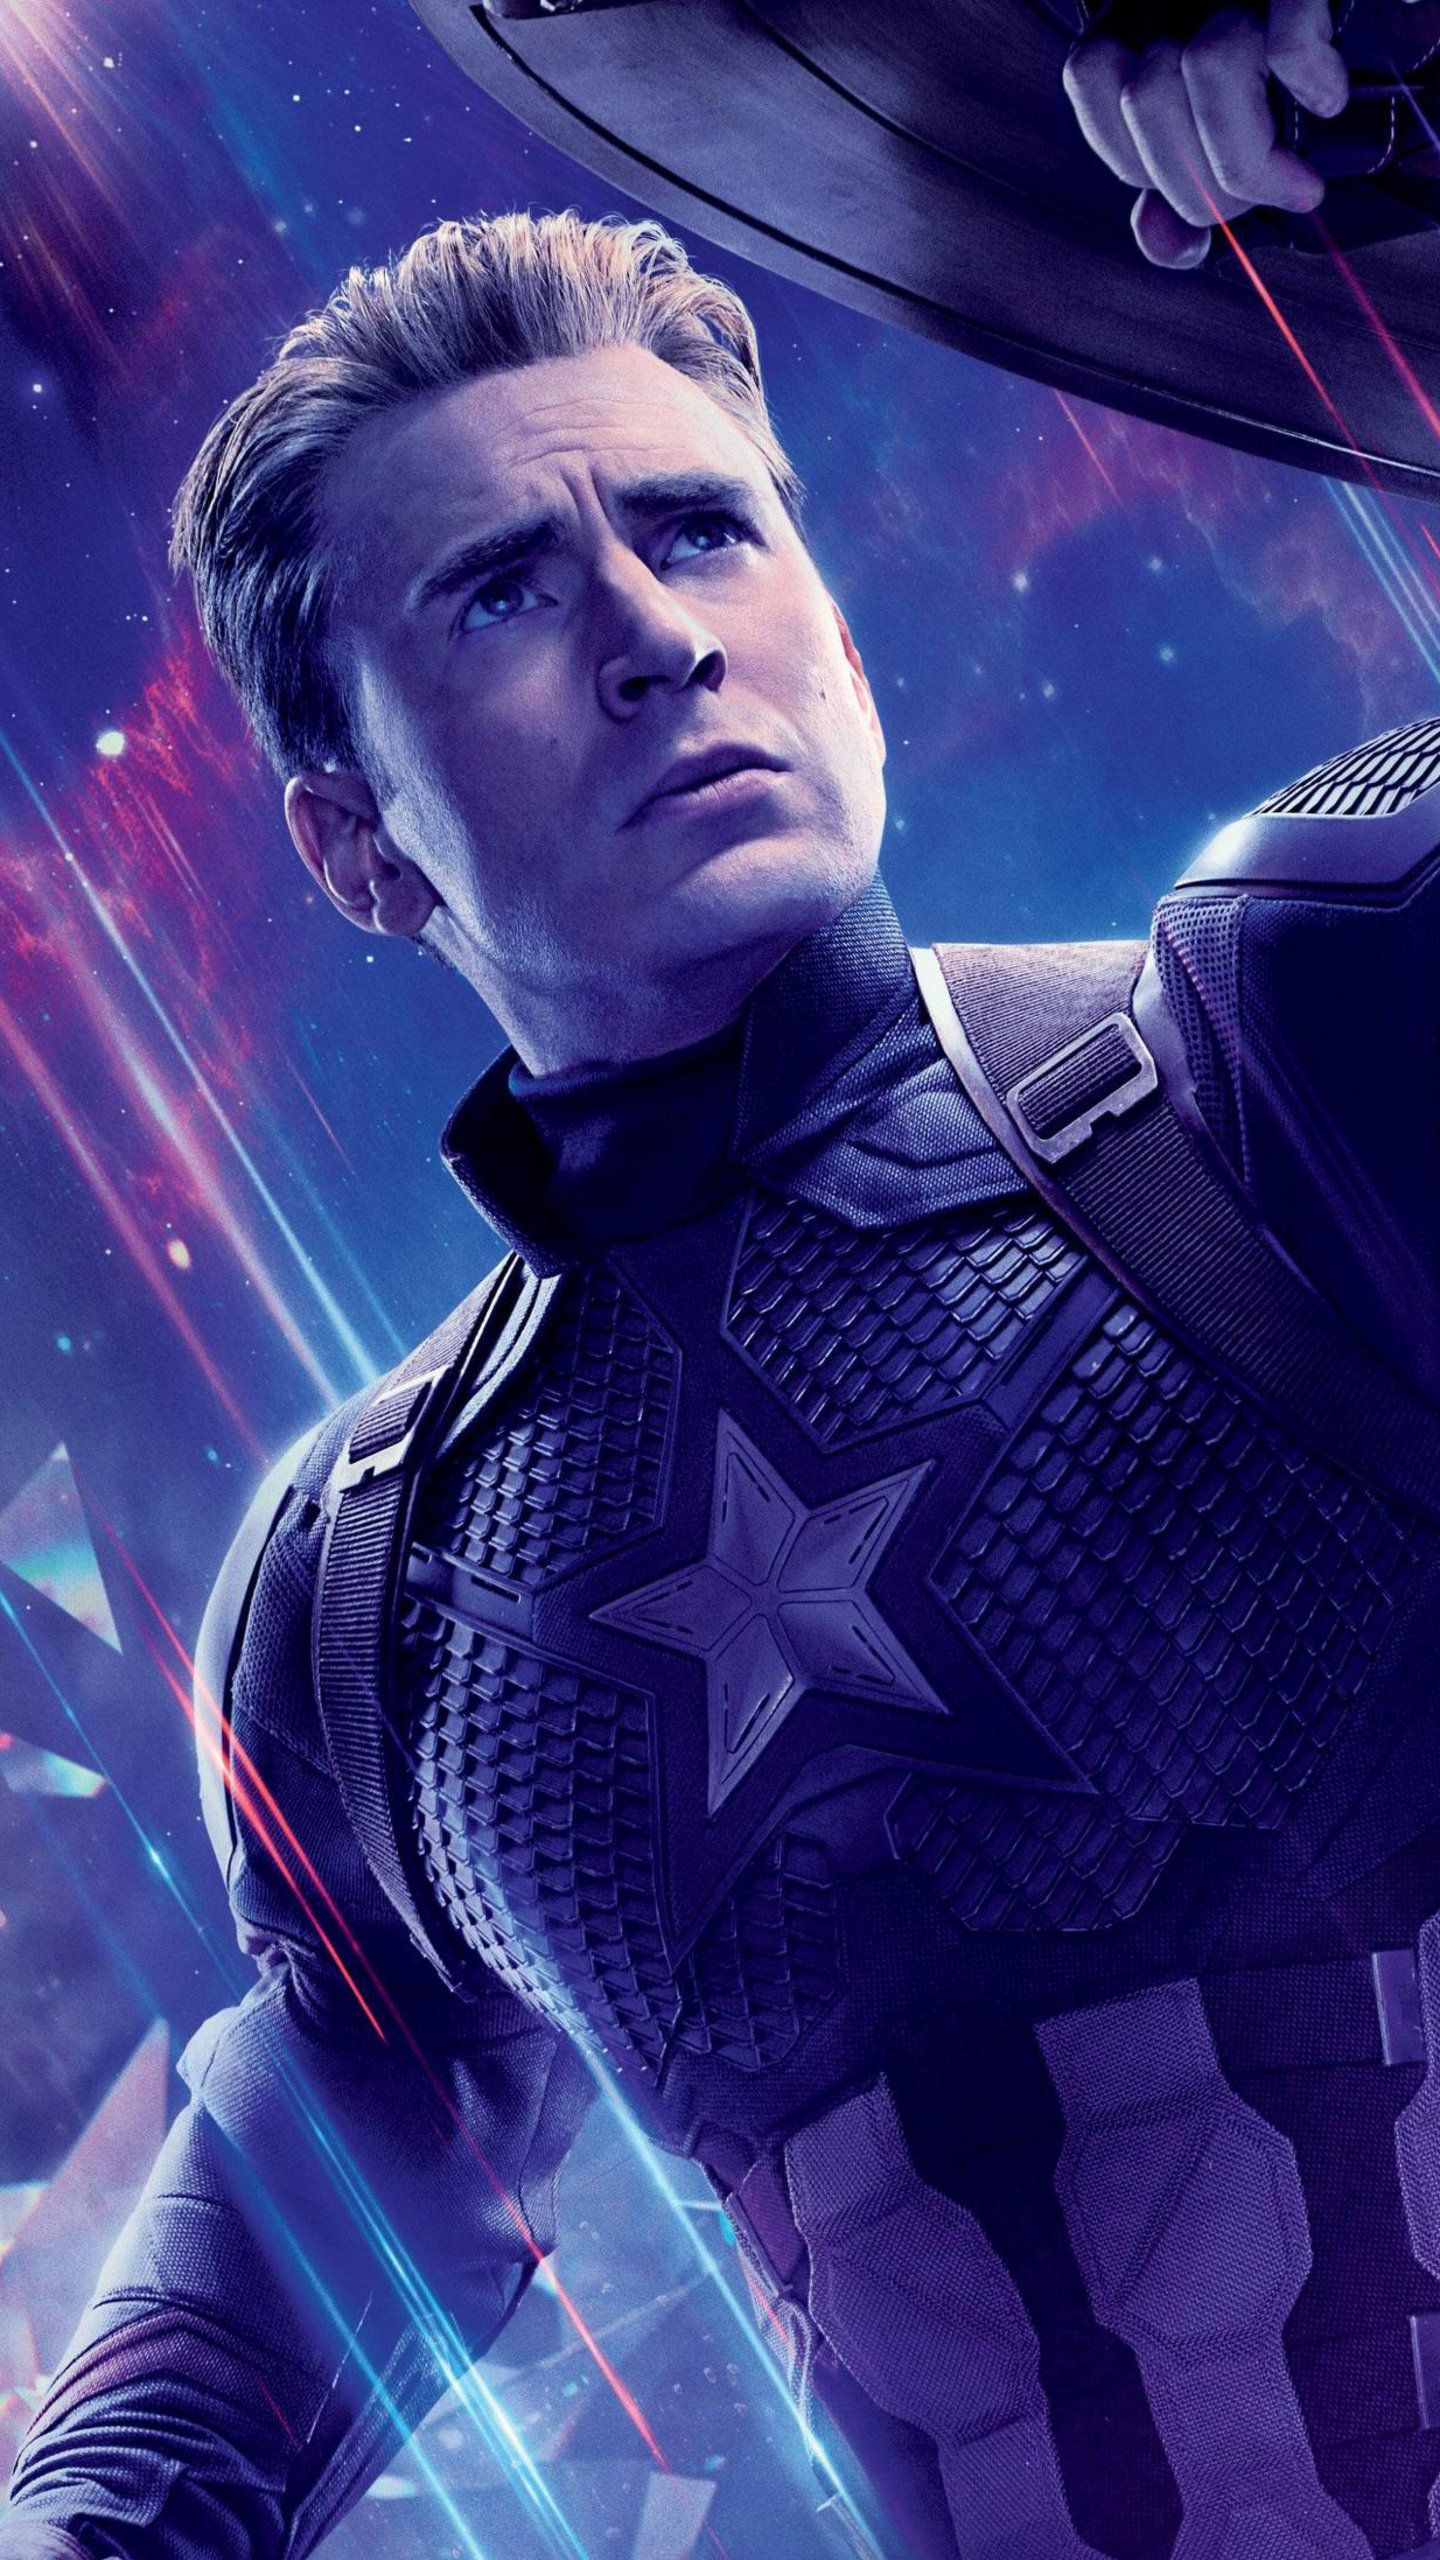 Captain America In Avengers Endgame Hd Movies Wallpapers Photos And Pictures Captain America Wallpaper Marvel Captain America Captain America Poster